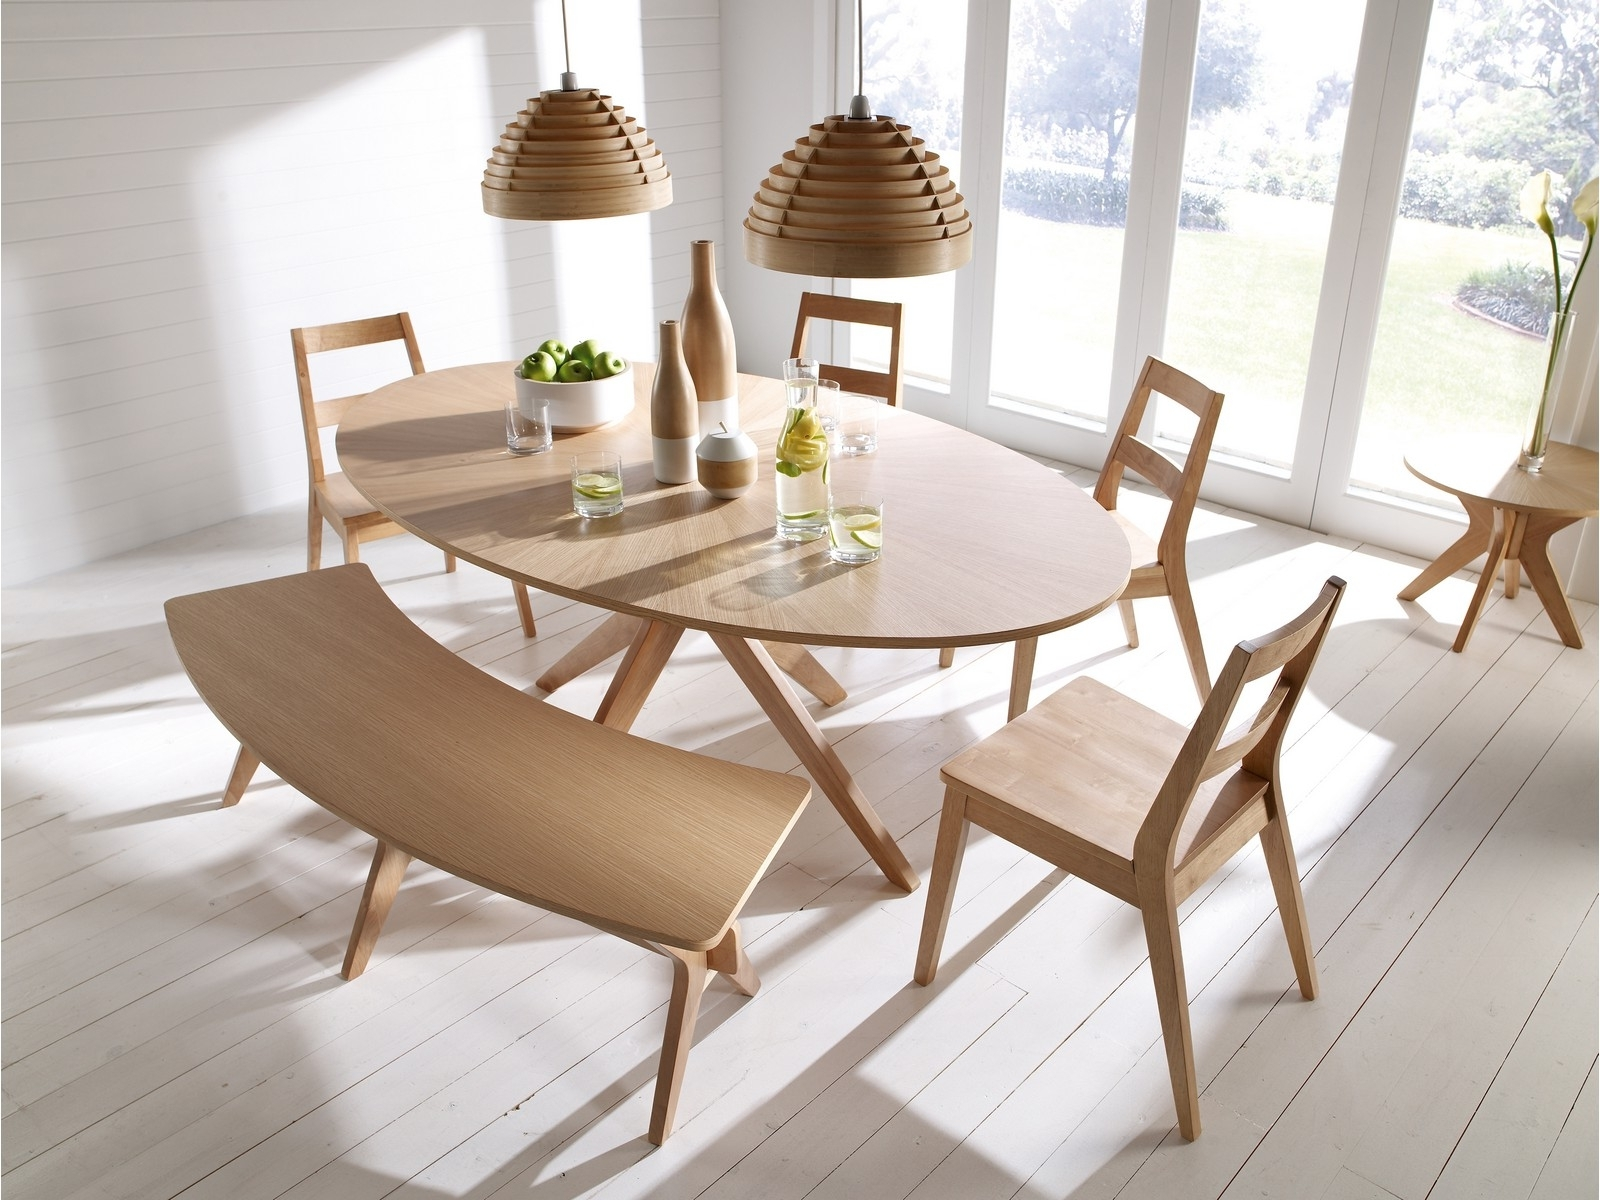 Latest Dining Room Tables And Chairs Throughout Malmo Dining Table Set Chairs Bench Oak Veneer & Solid Wood (View 16 of 25)